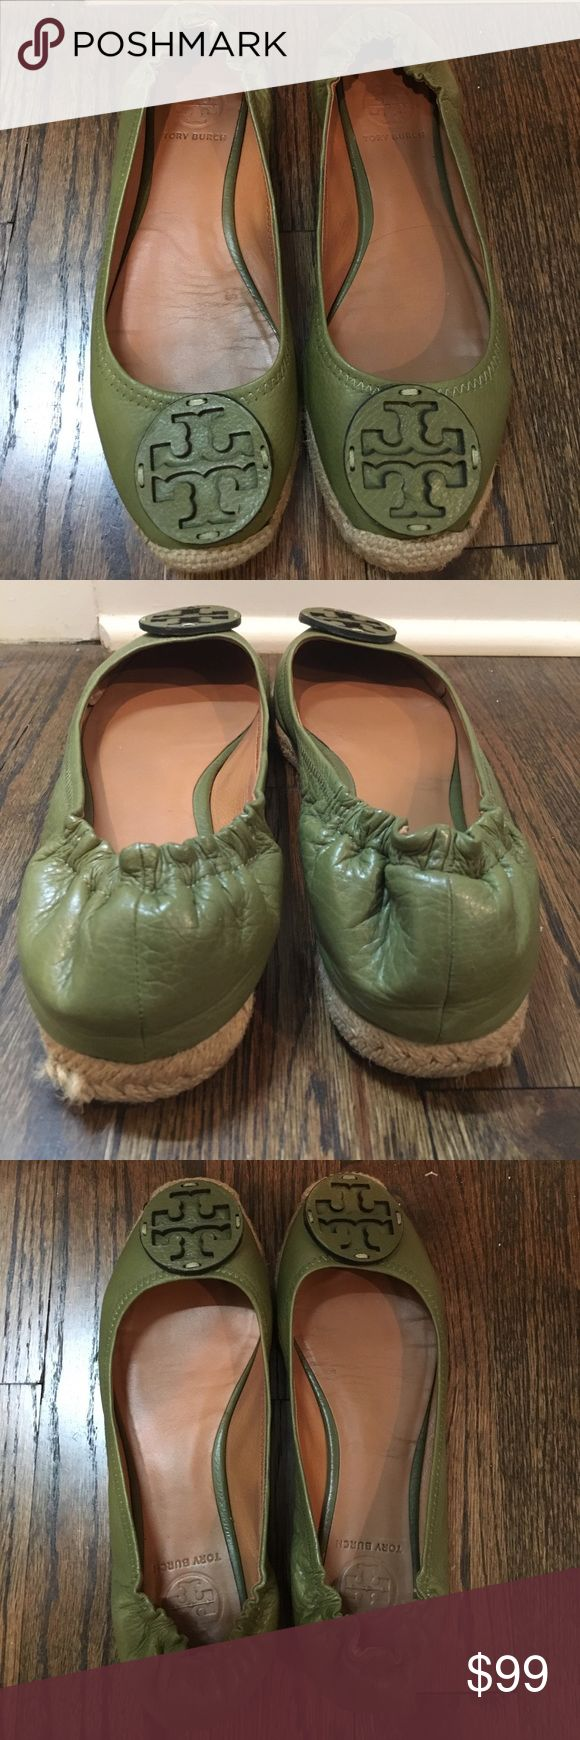 Tory Burch flats Olive green / hunter green espadrille like flats. No marks on leather. Perfect condition. Only wore 5 times. Tory Burch Shoes Flats & Loafers